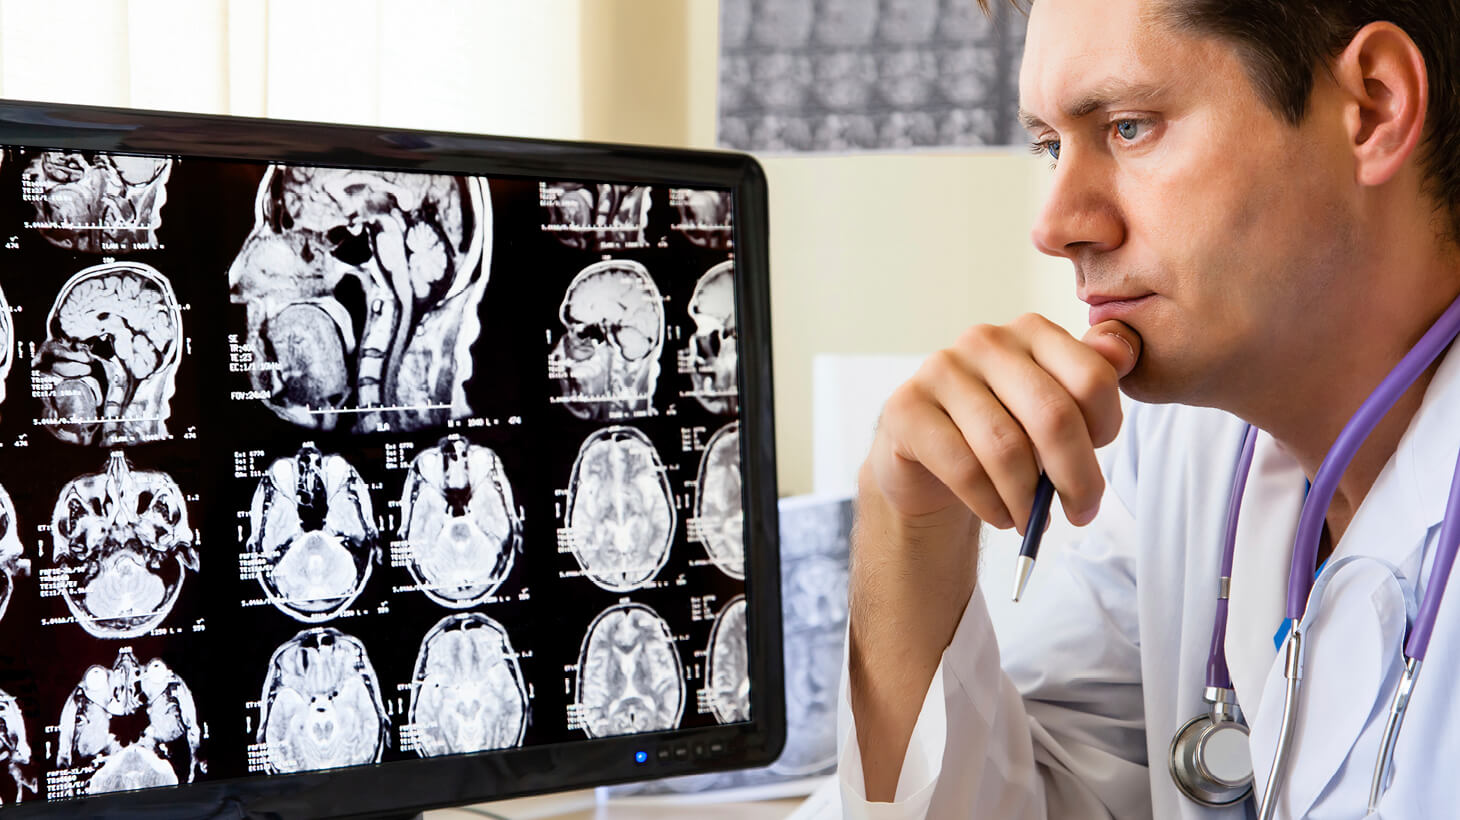 Doctor reviewing scans on computer monitor